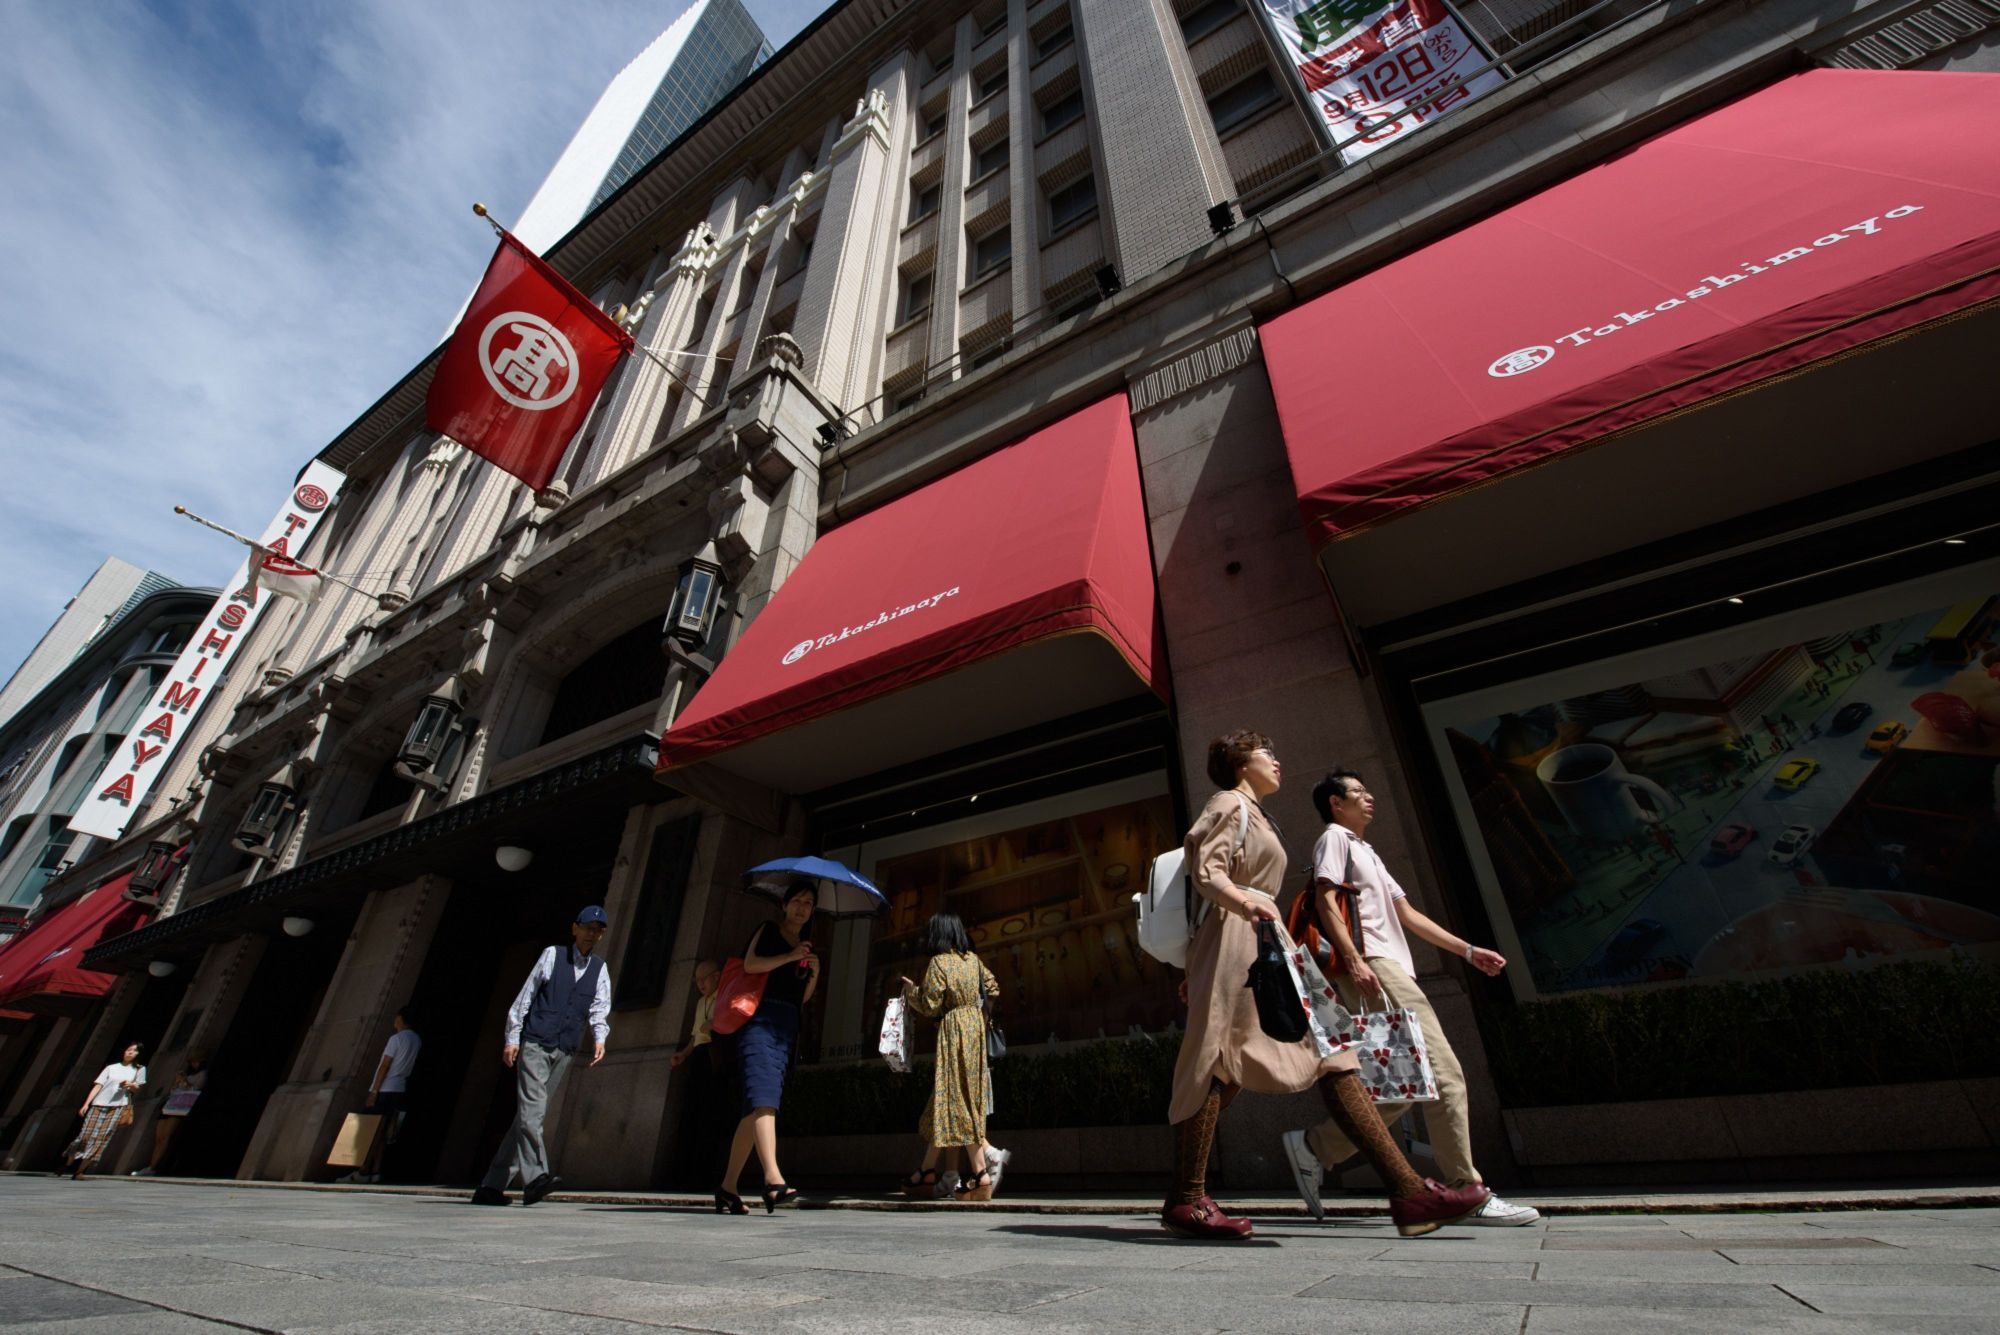 Pedestrians walk past a department store operated by Takashimaya Co. in Nihonbashi district of Tokyo in September 2018. Major department stores reported drops in Lunar New Year sales this year in the wake of the coronavirus outbreak in China. | BLOOMBERG